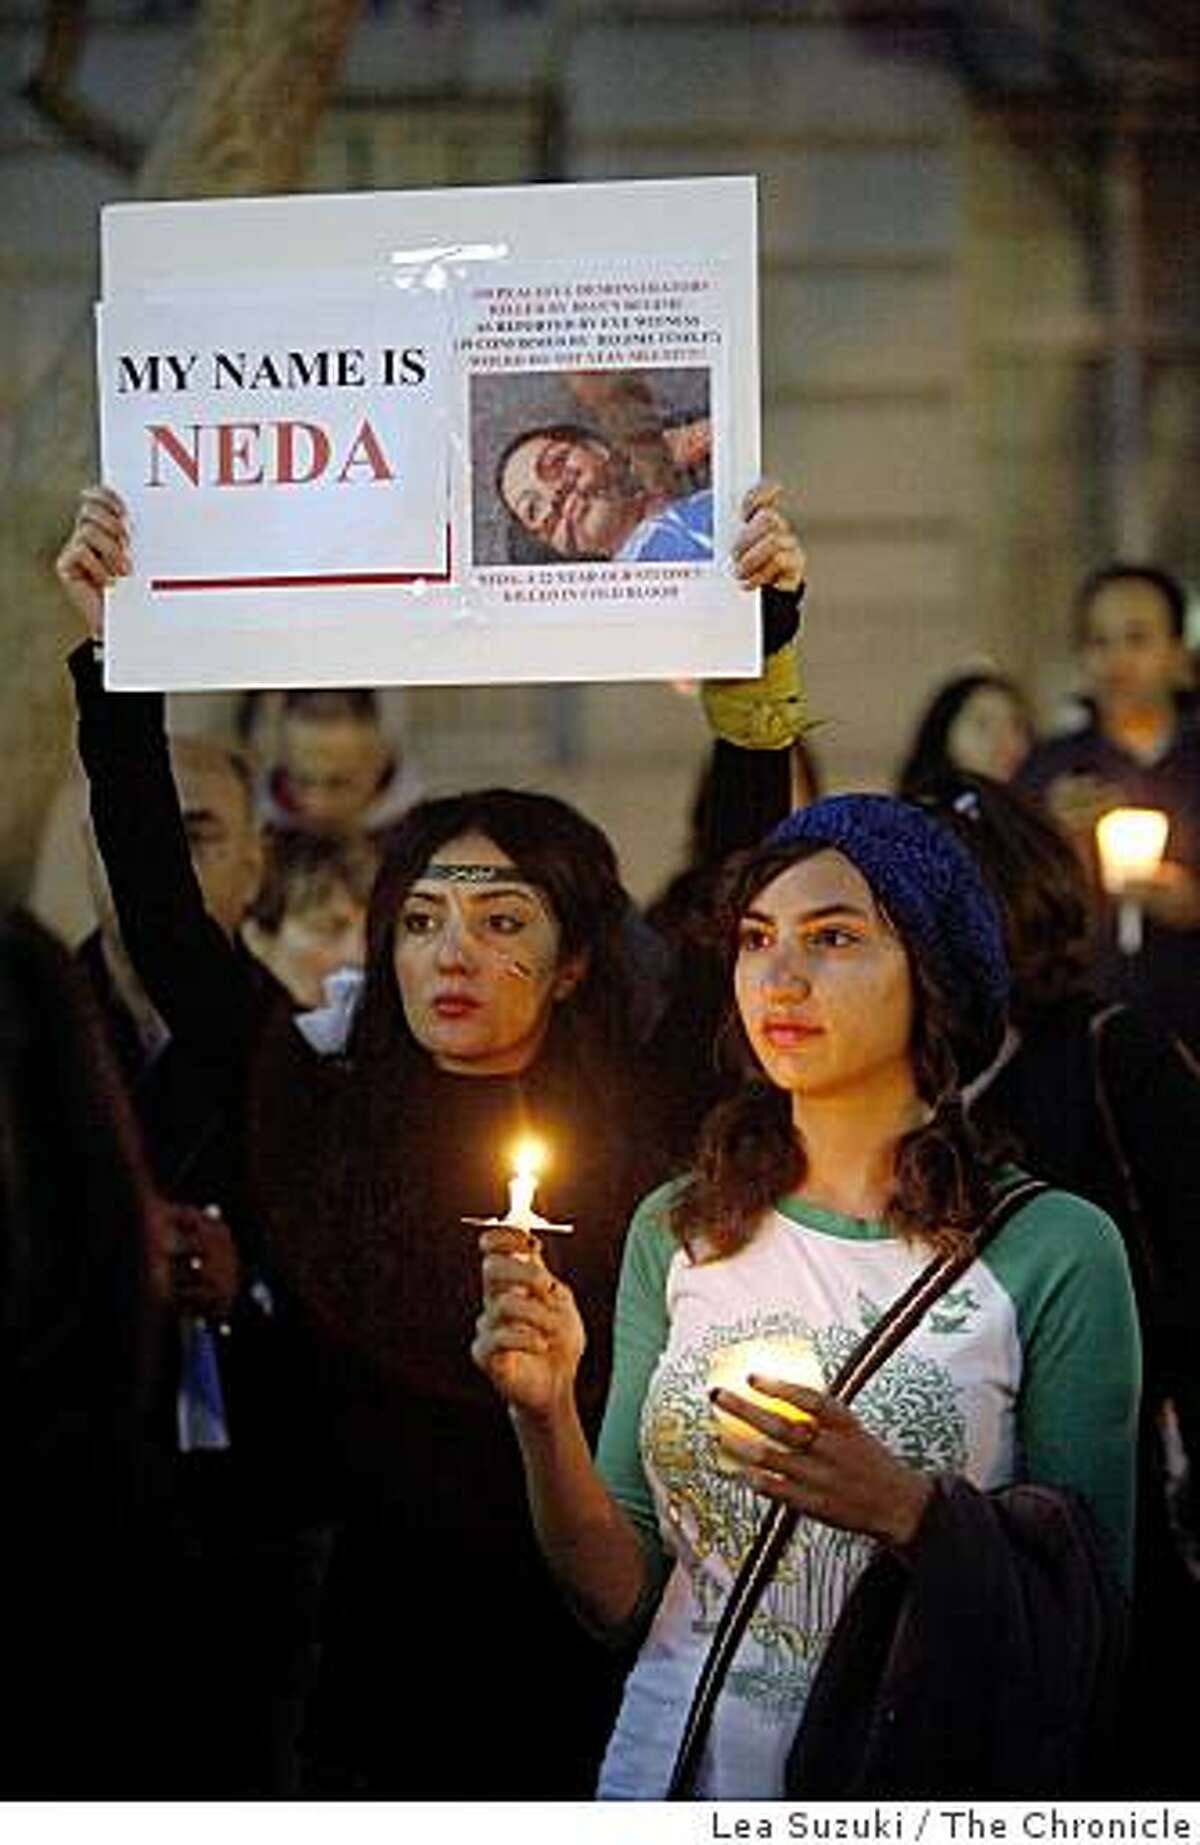 Rana Ilkan of Sunnyvale (l to r) and Golzar Afghani of San Diego, Calif. attend a vigil for Iran on Sunday June 21, 2009 in San Francisco, Calif. at U.N. Plaza.